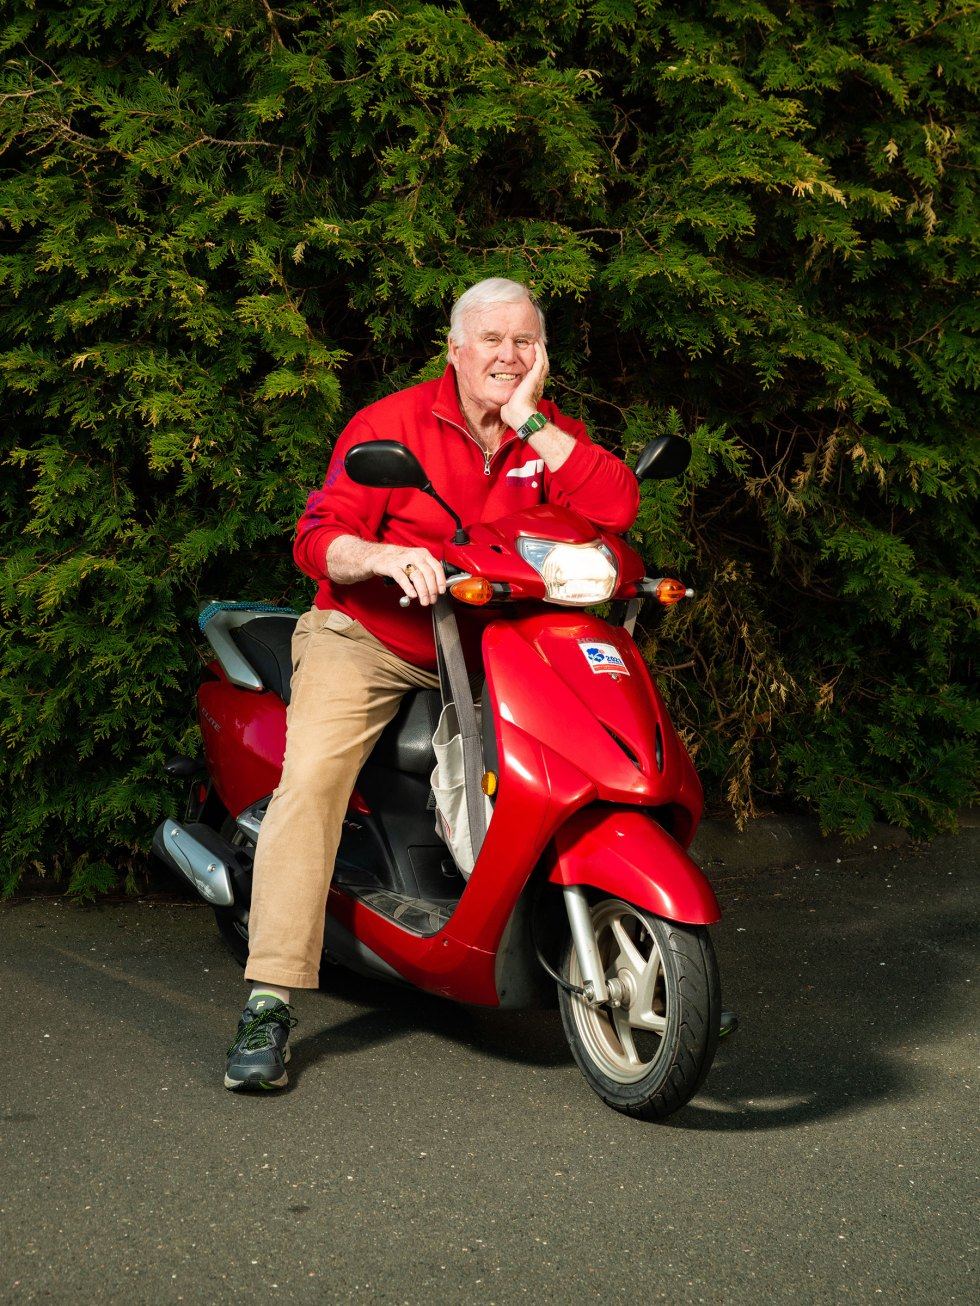 Jim Byrne poses for a portrait with his scooter outside of his home in Connecticut.